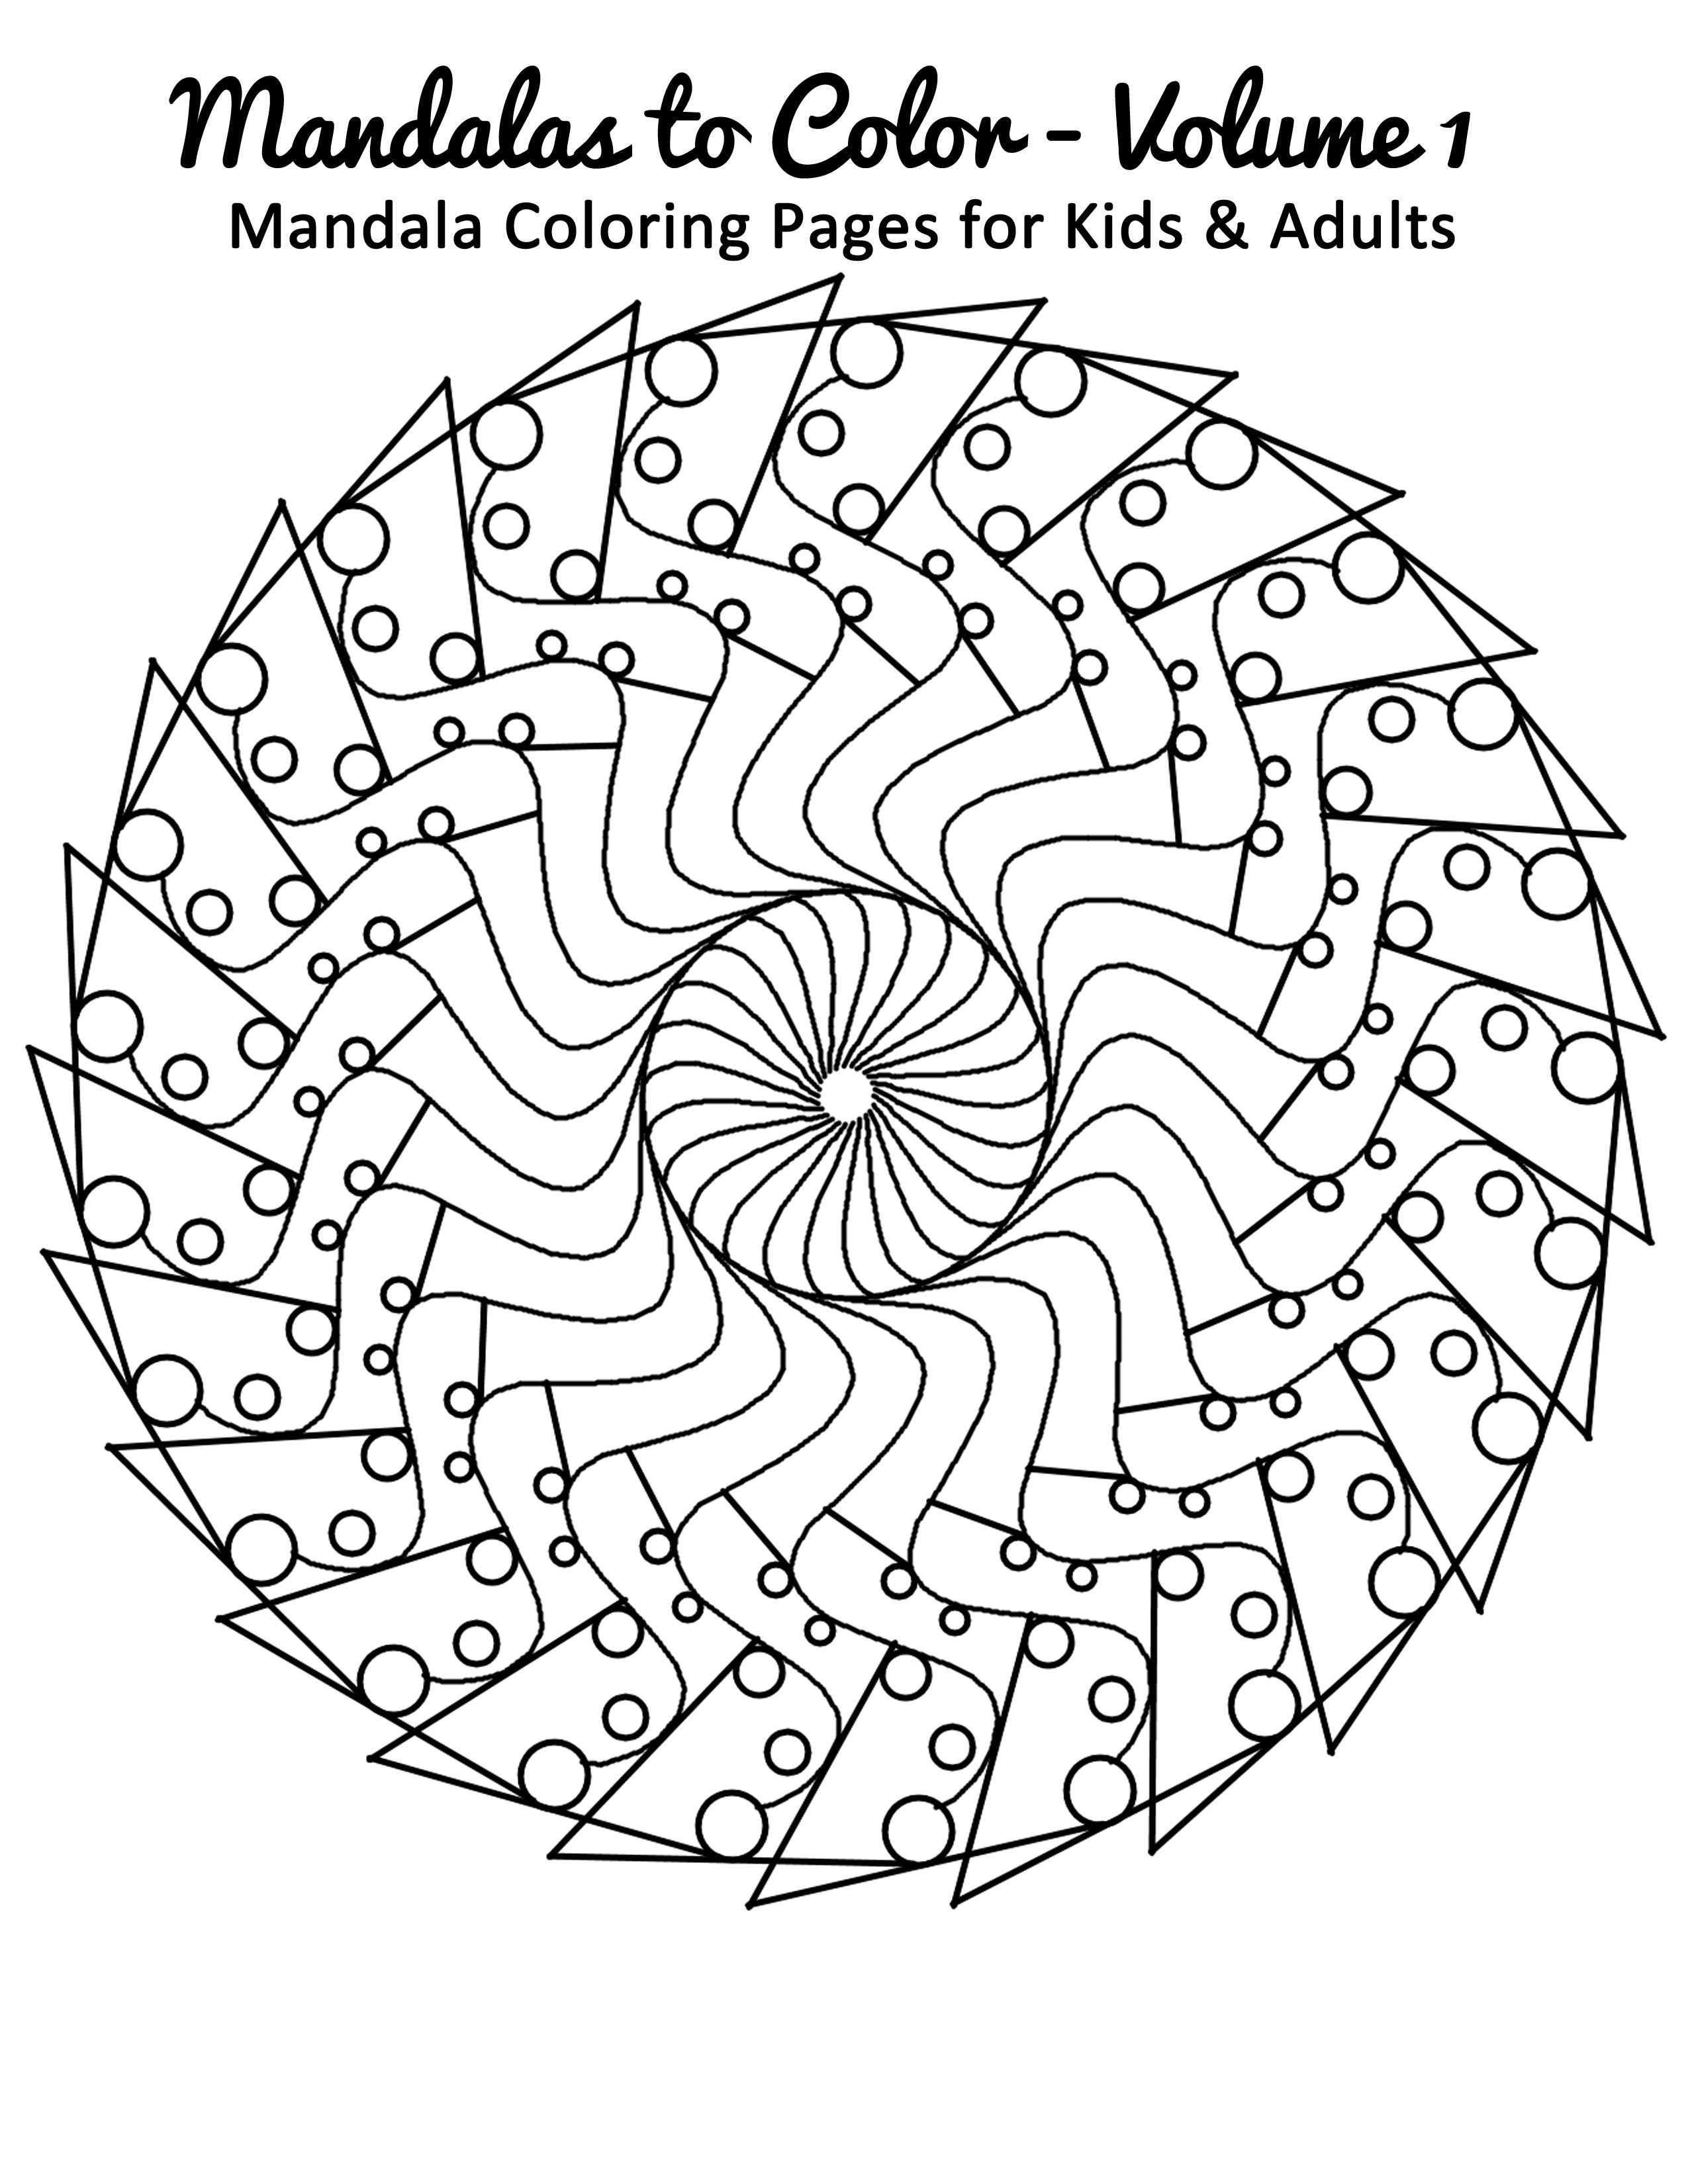 Do color mandalas for relaxation Click here for 49 more ...